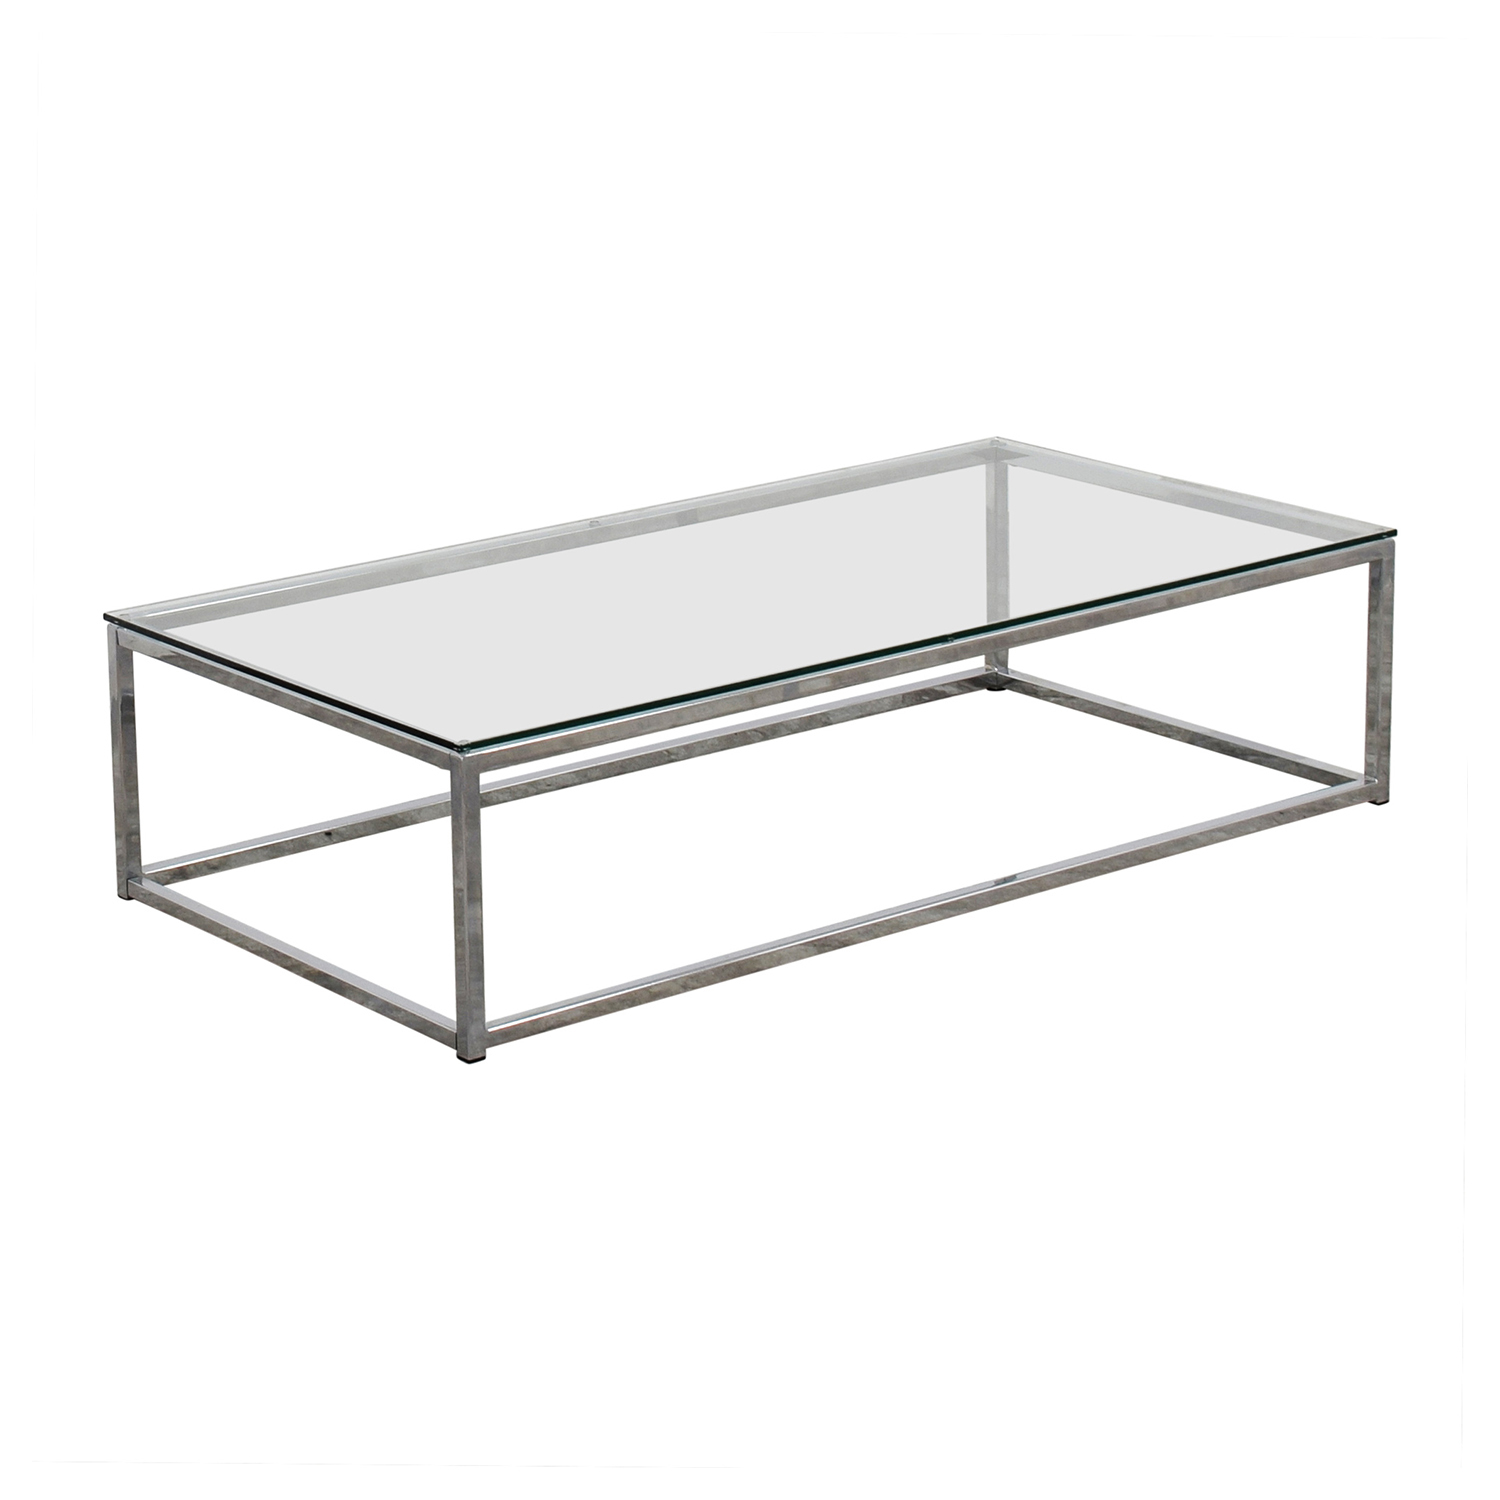 CB2 CB2 Glass and Chrome Coffee Table price